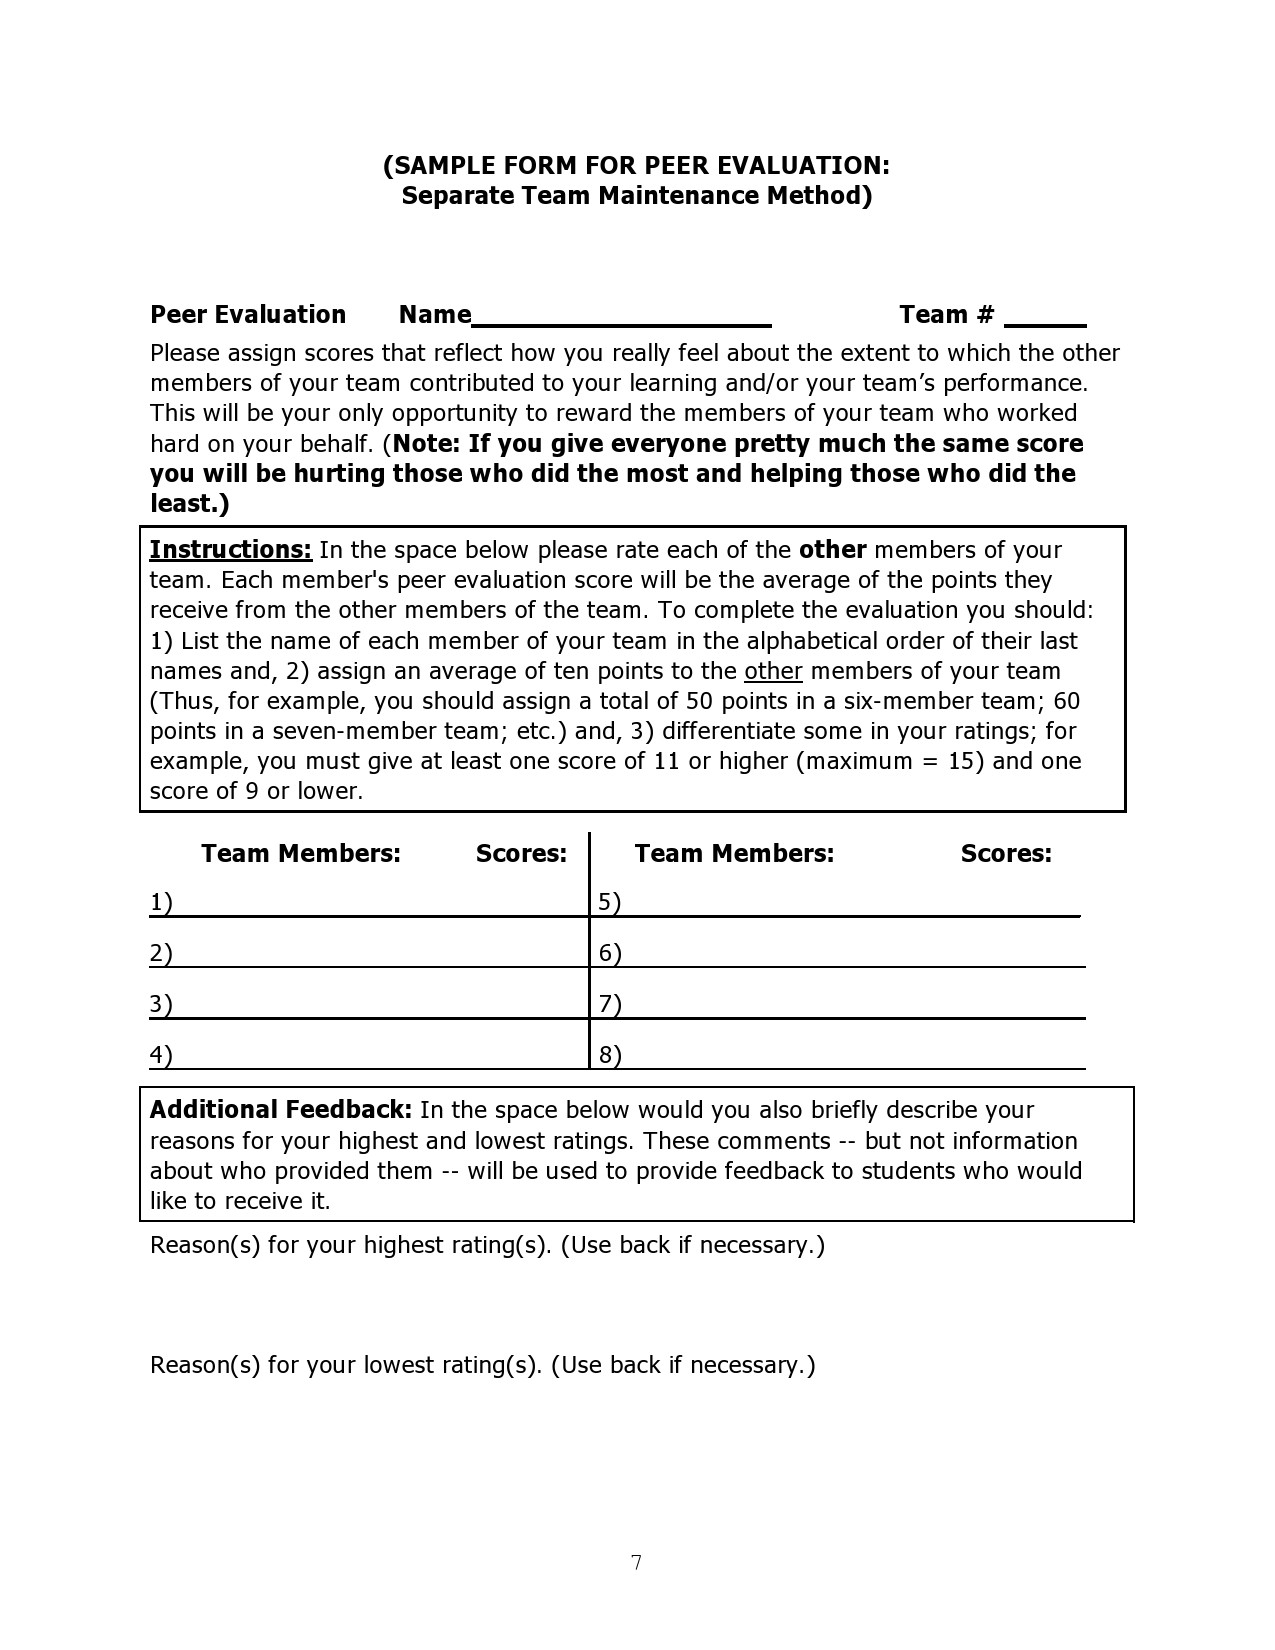 Free peer evaluation form 33